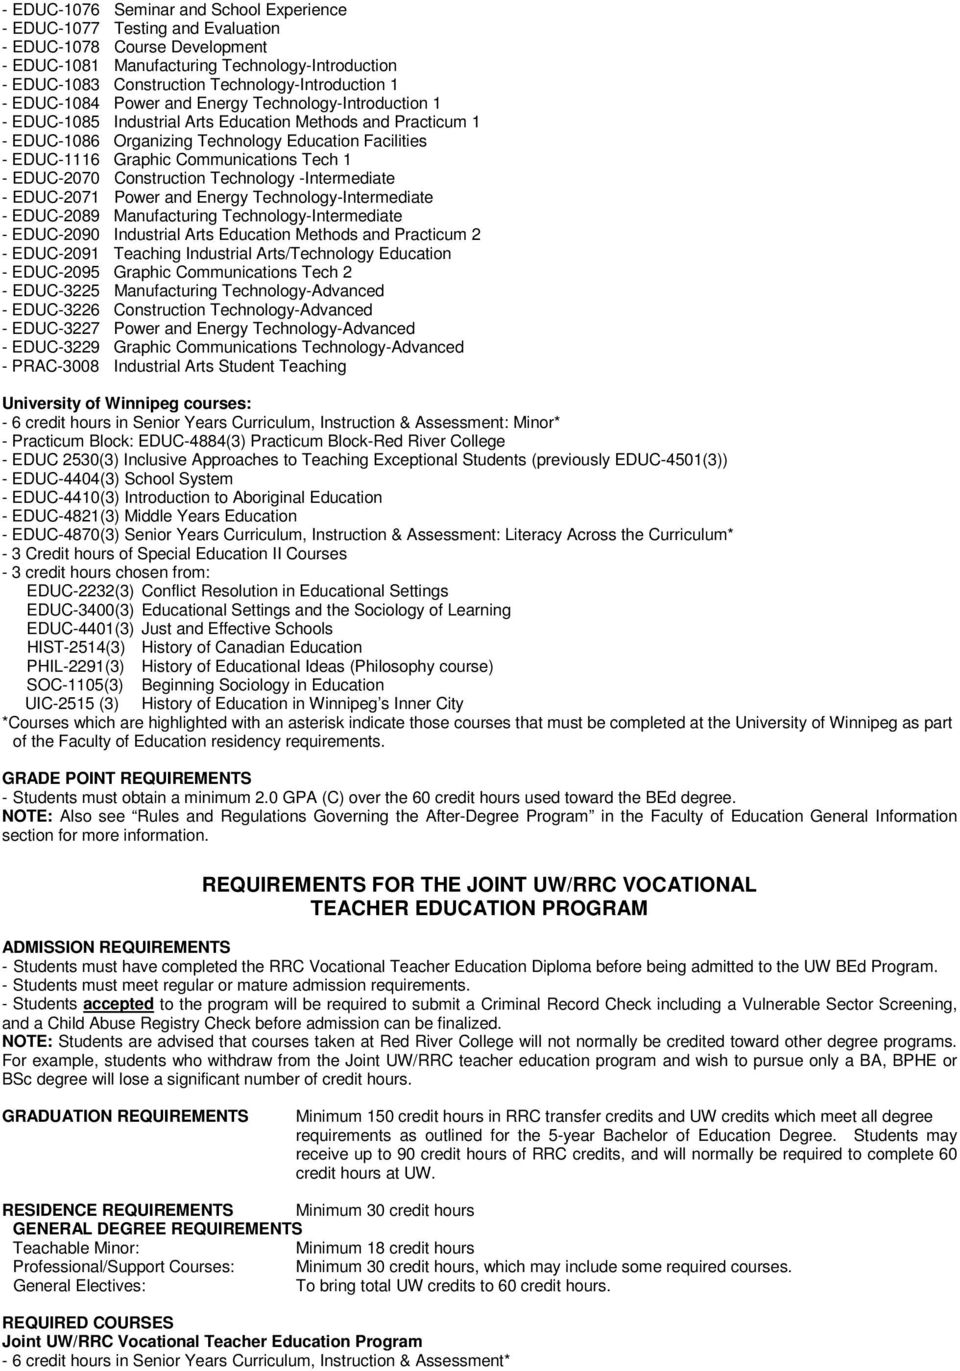 EDUC-1116 Graphic Communications Tech 1 - EDUC-2070 Construction Technology -Intermediate - EDUC-2071 Power and Energy Technology-Intermediate - EDUC-2089 Manufacturing Technology-Intermediate -